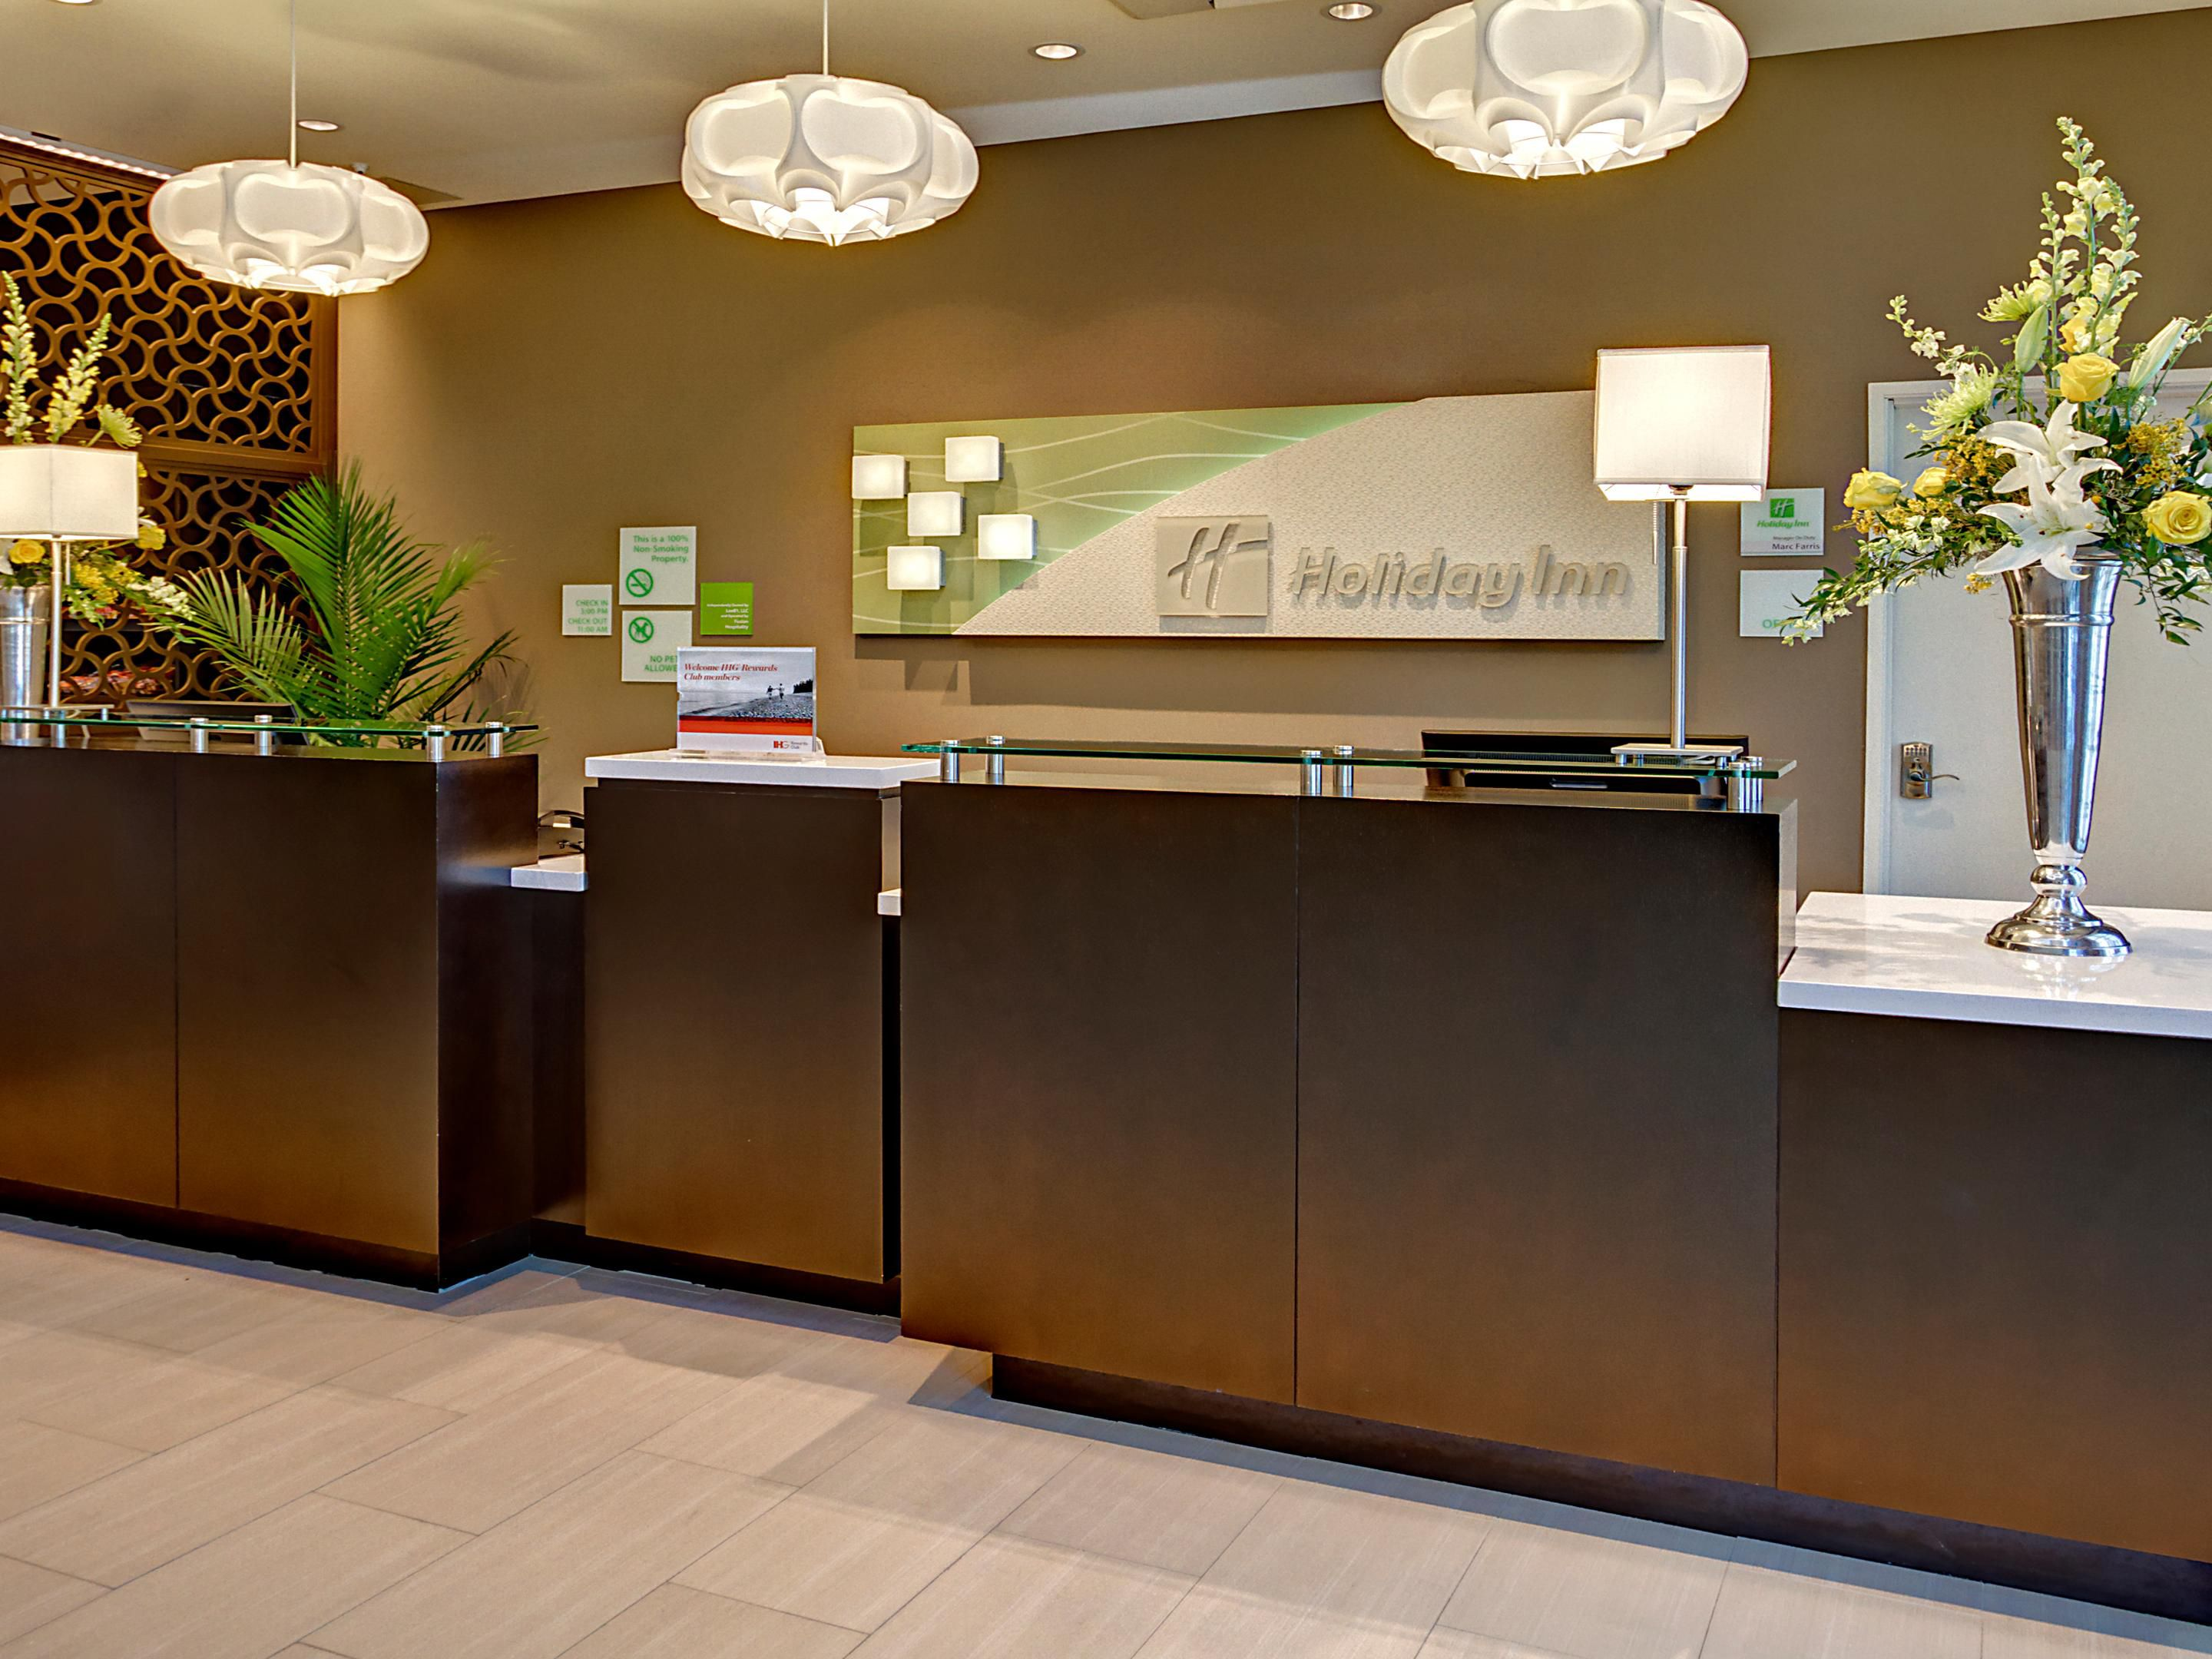 Welcome to the Holiday Inn & Suites Tupelo North.